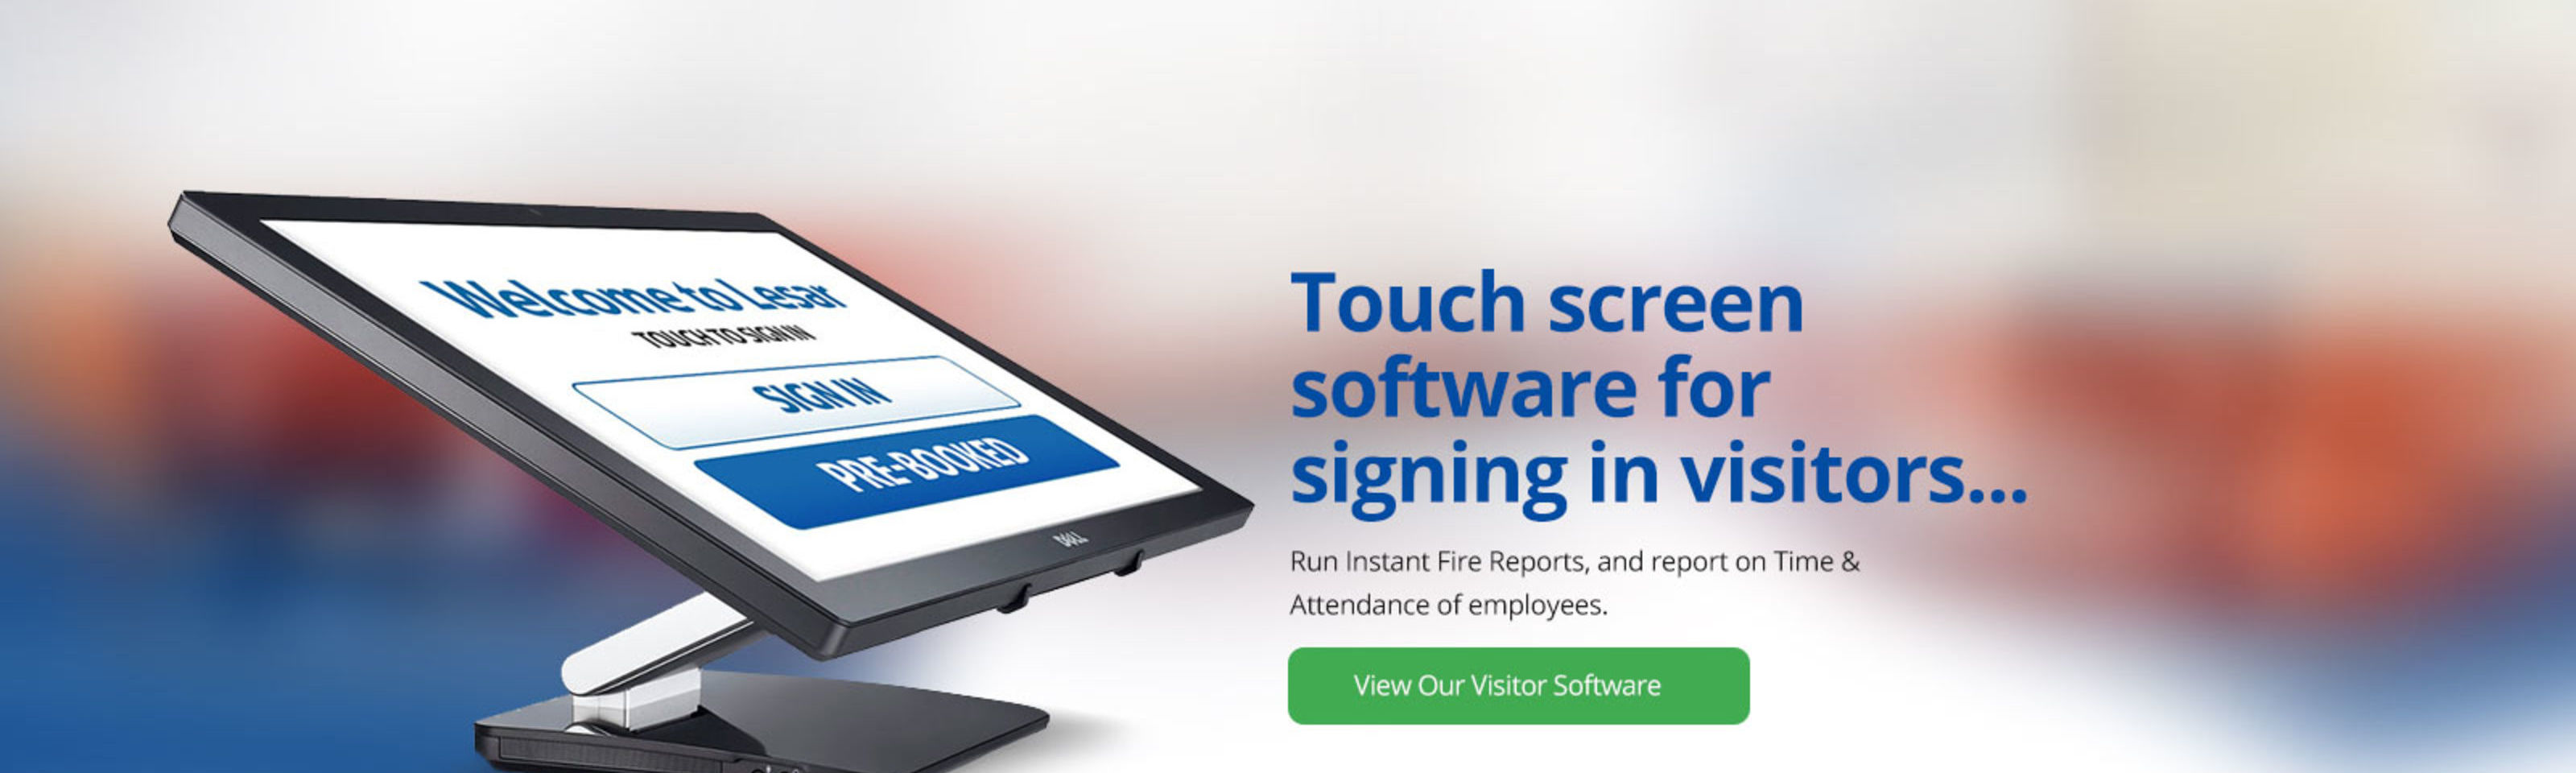 Our Touch Screen Visitor Management Software Allows You To Pre-book Visitors, Contractors, Staff & Students On-Site.